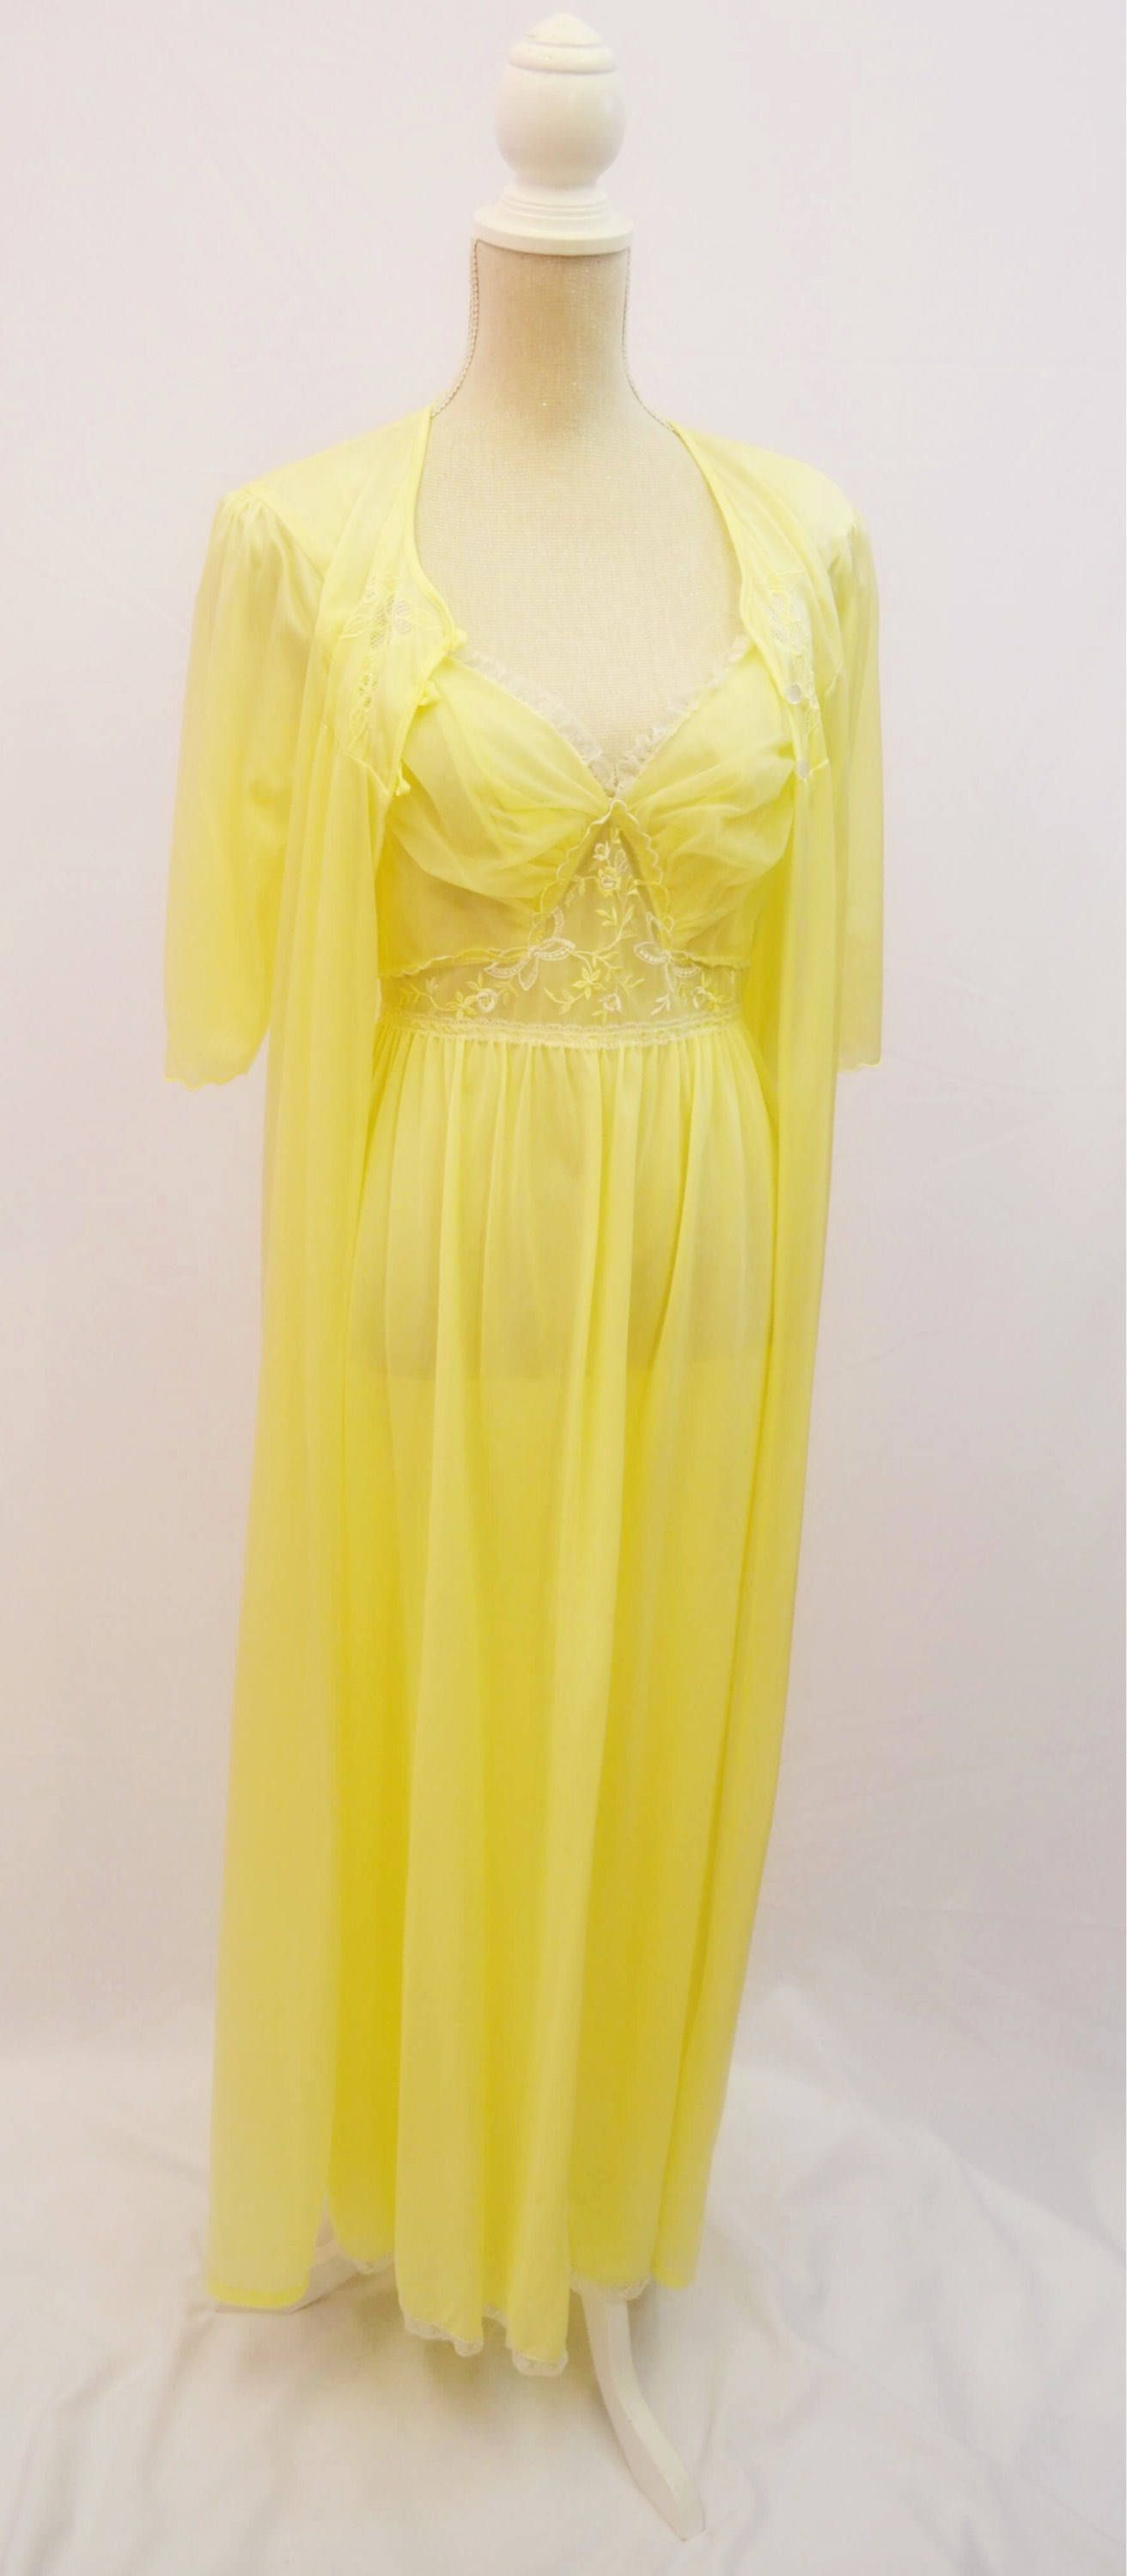 Valentines gift Yellow sheer night gown and Negligee set made by Lady Daz  in 1960 s by VintageVanityGB on Etsy 67499e452